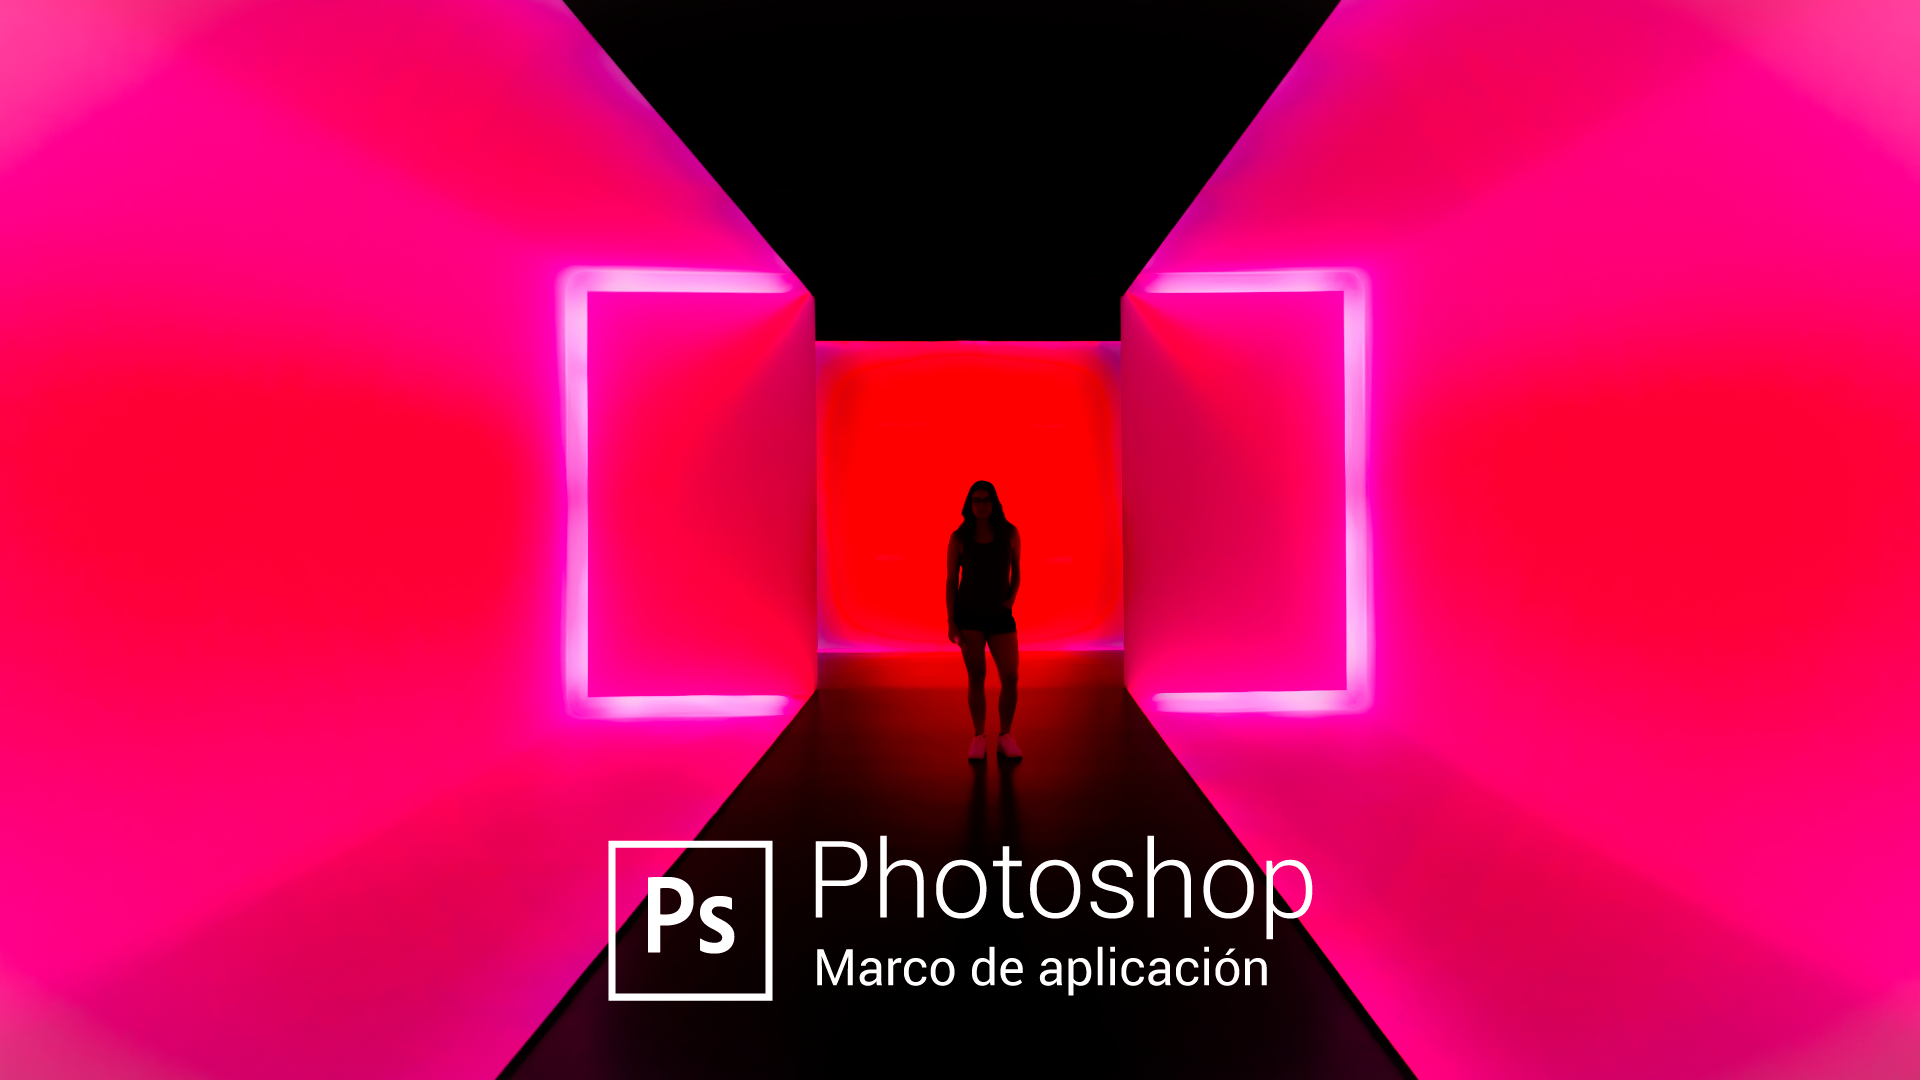 1001.graphics-photoshop-marco-aplicacion-1_dpazuc.png